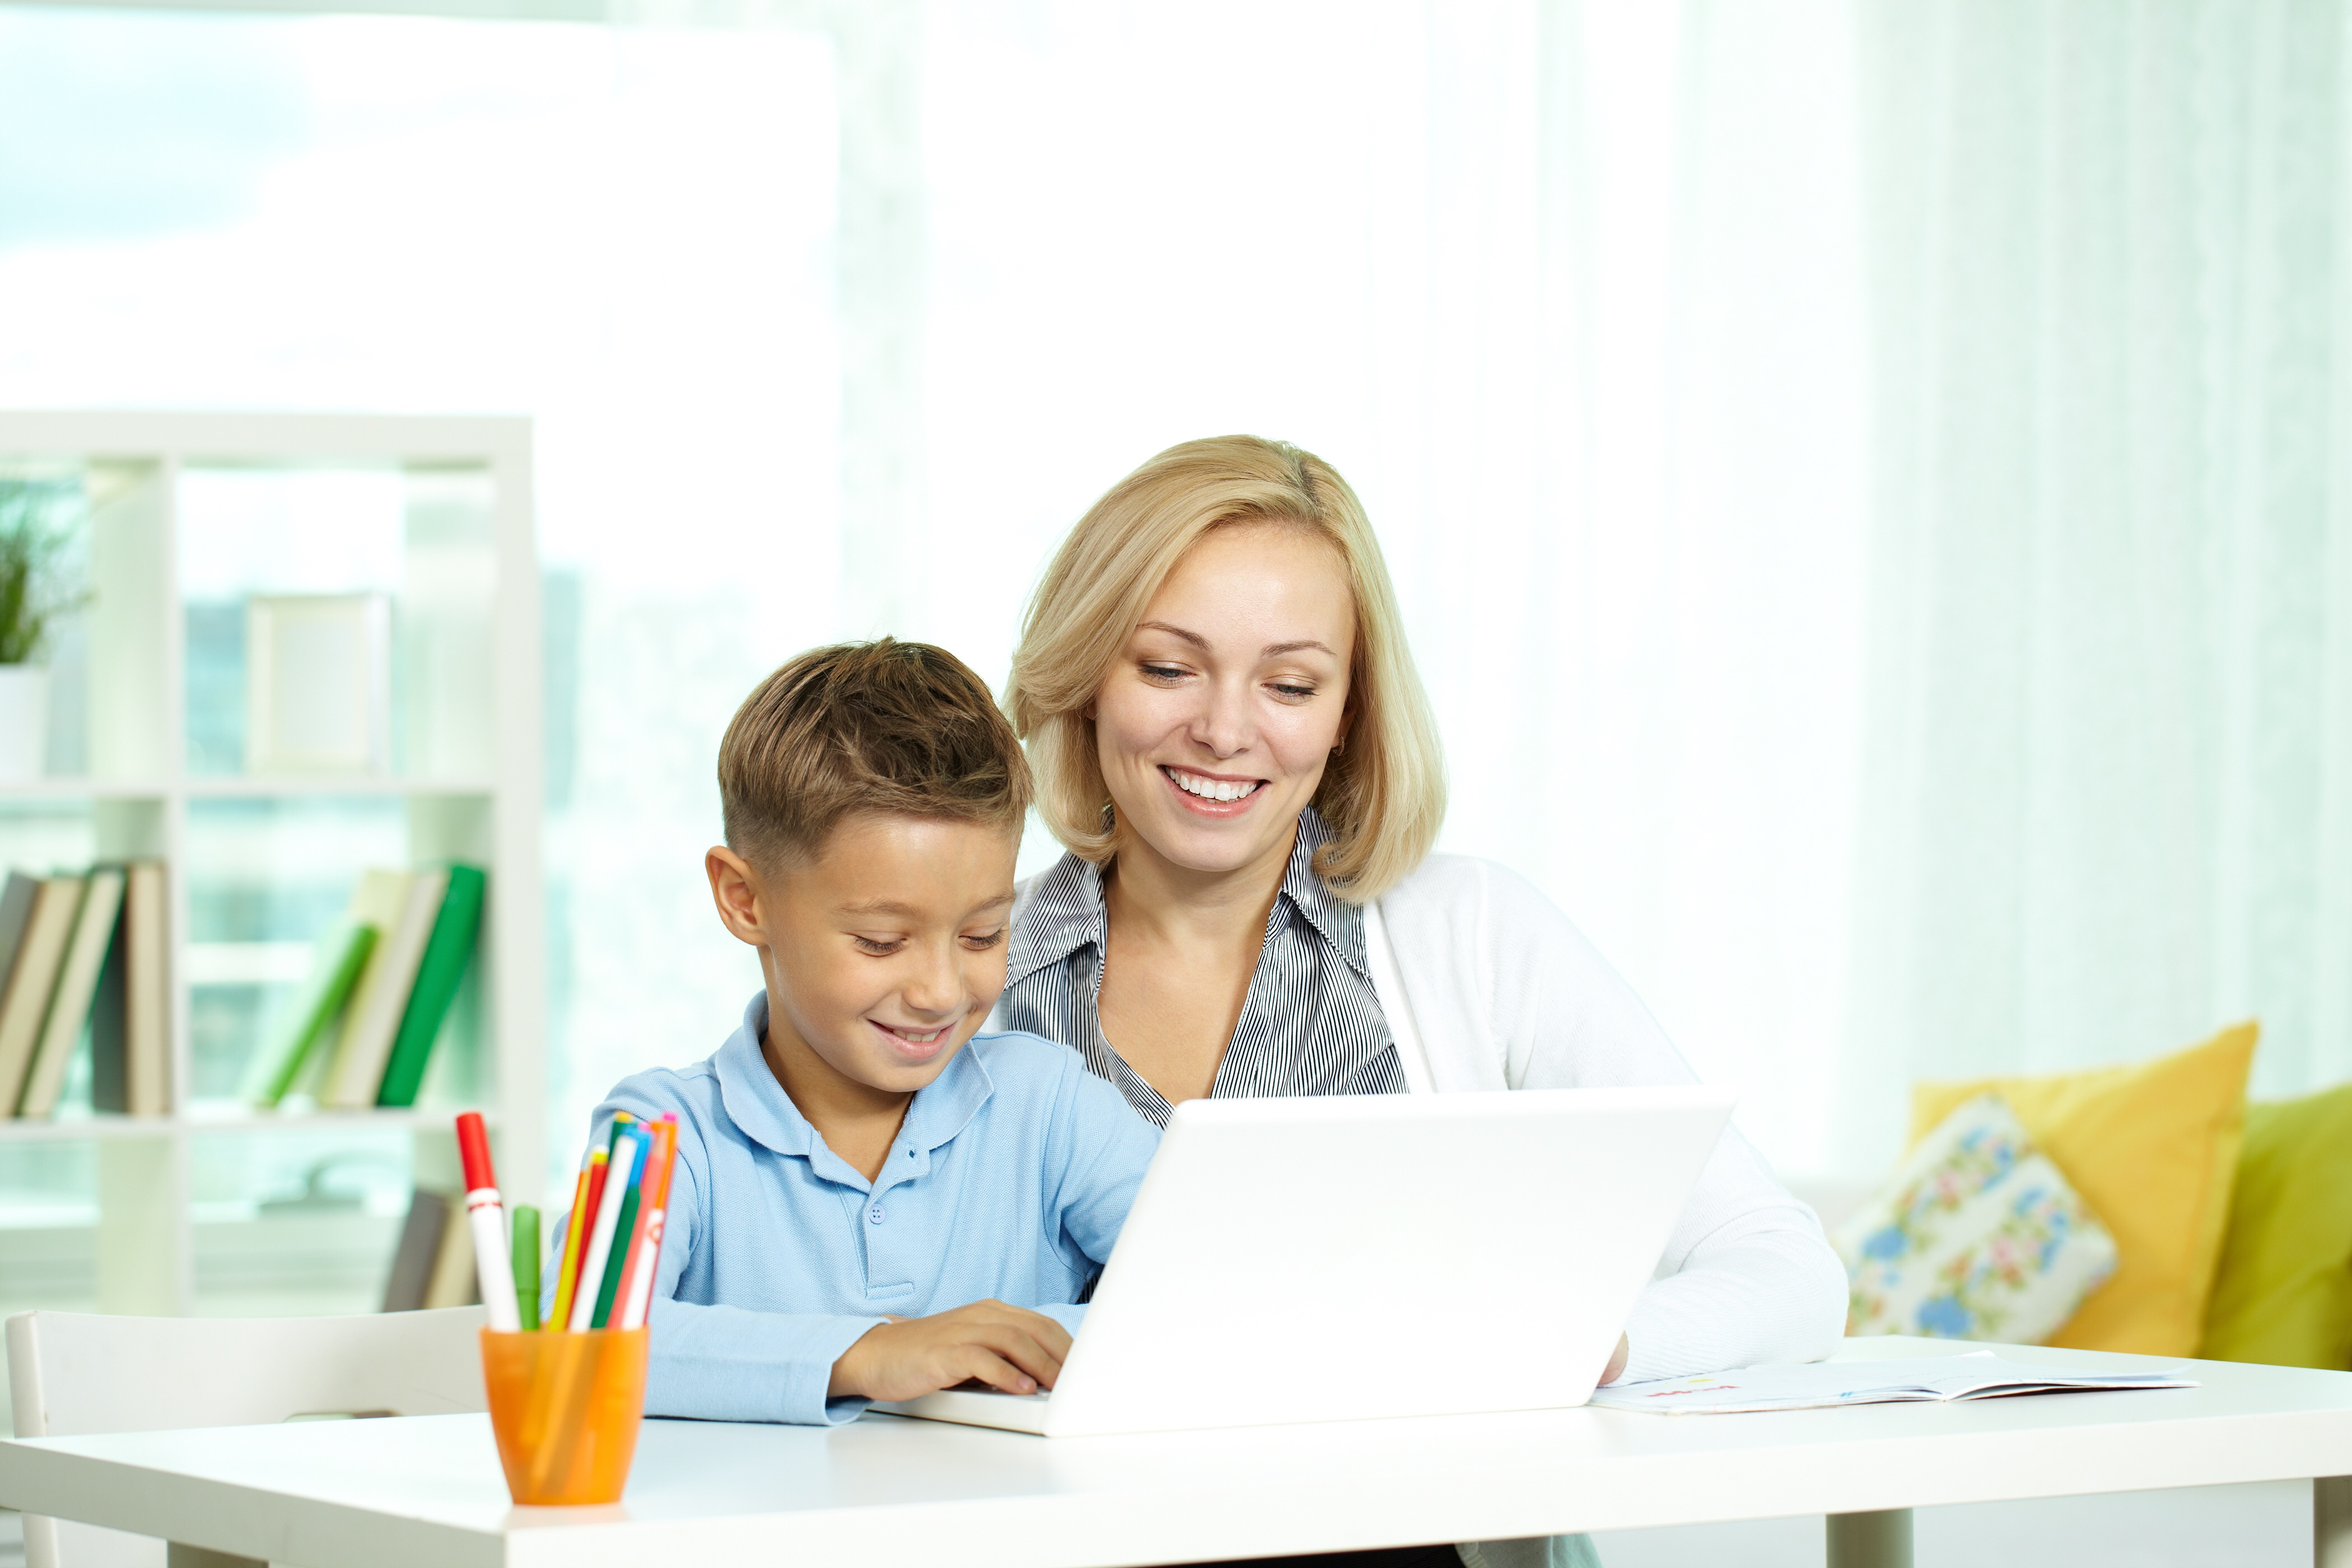 We work with homeschooling students.